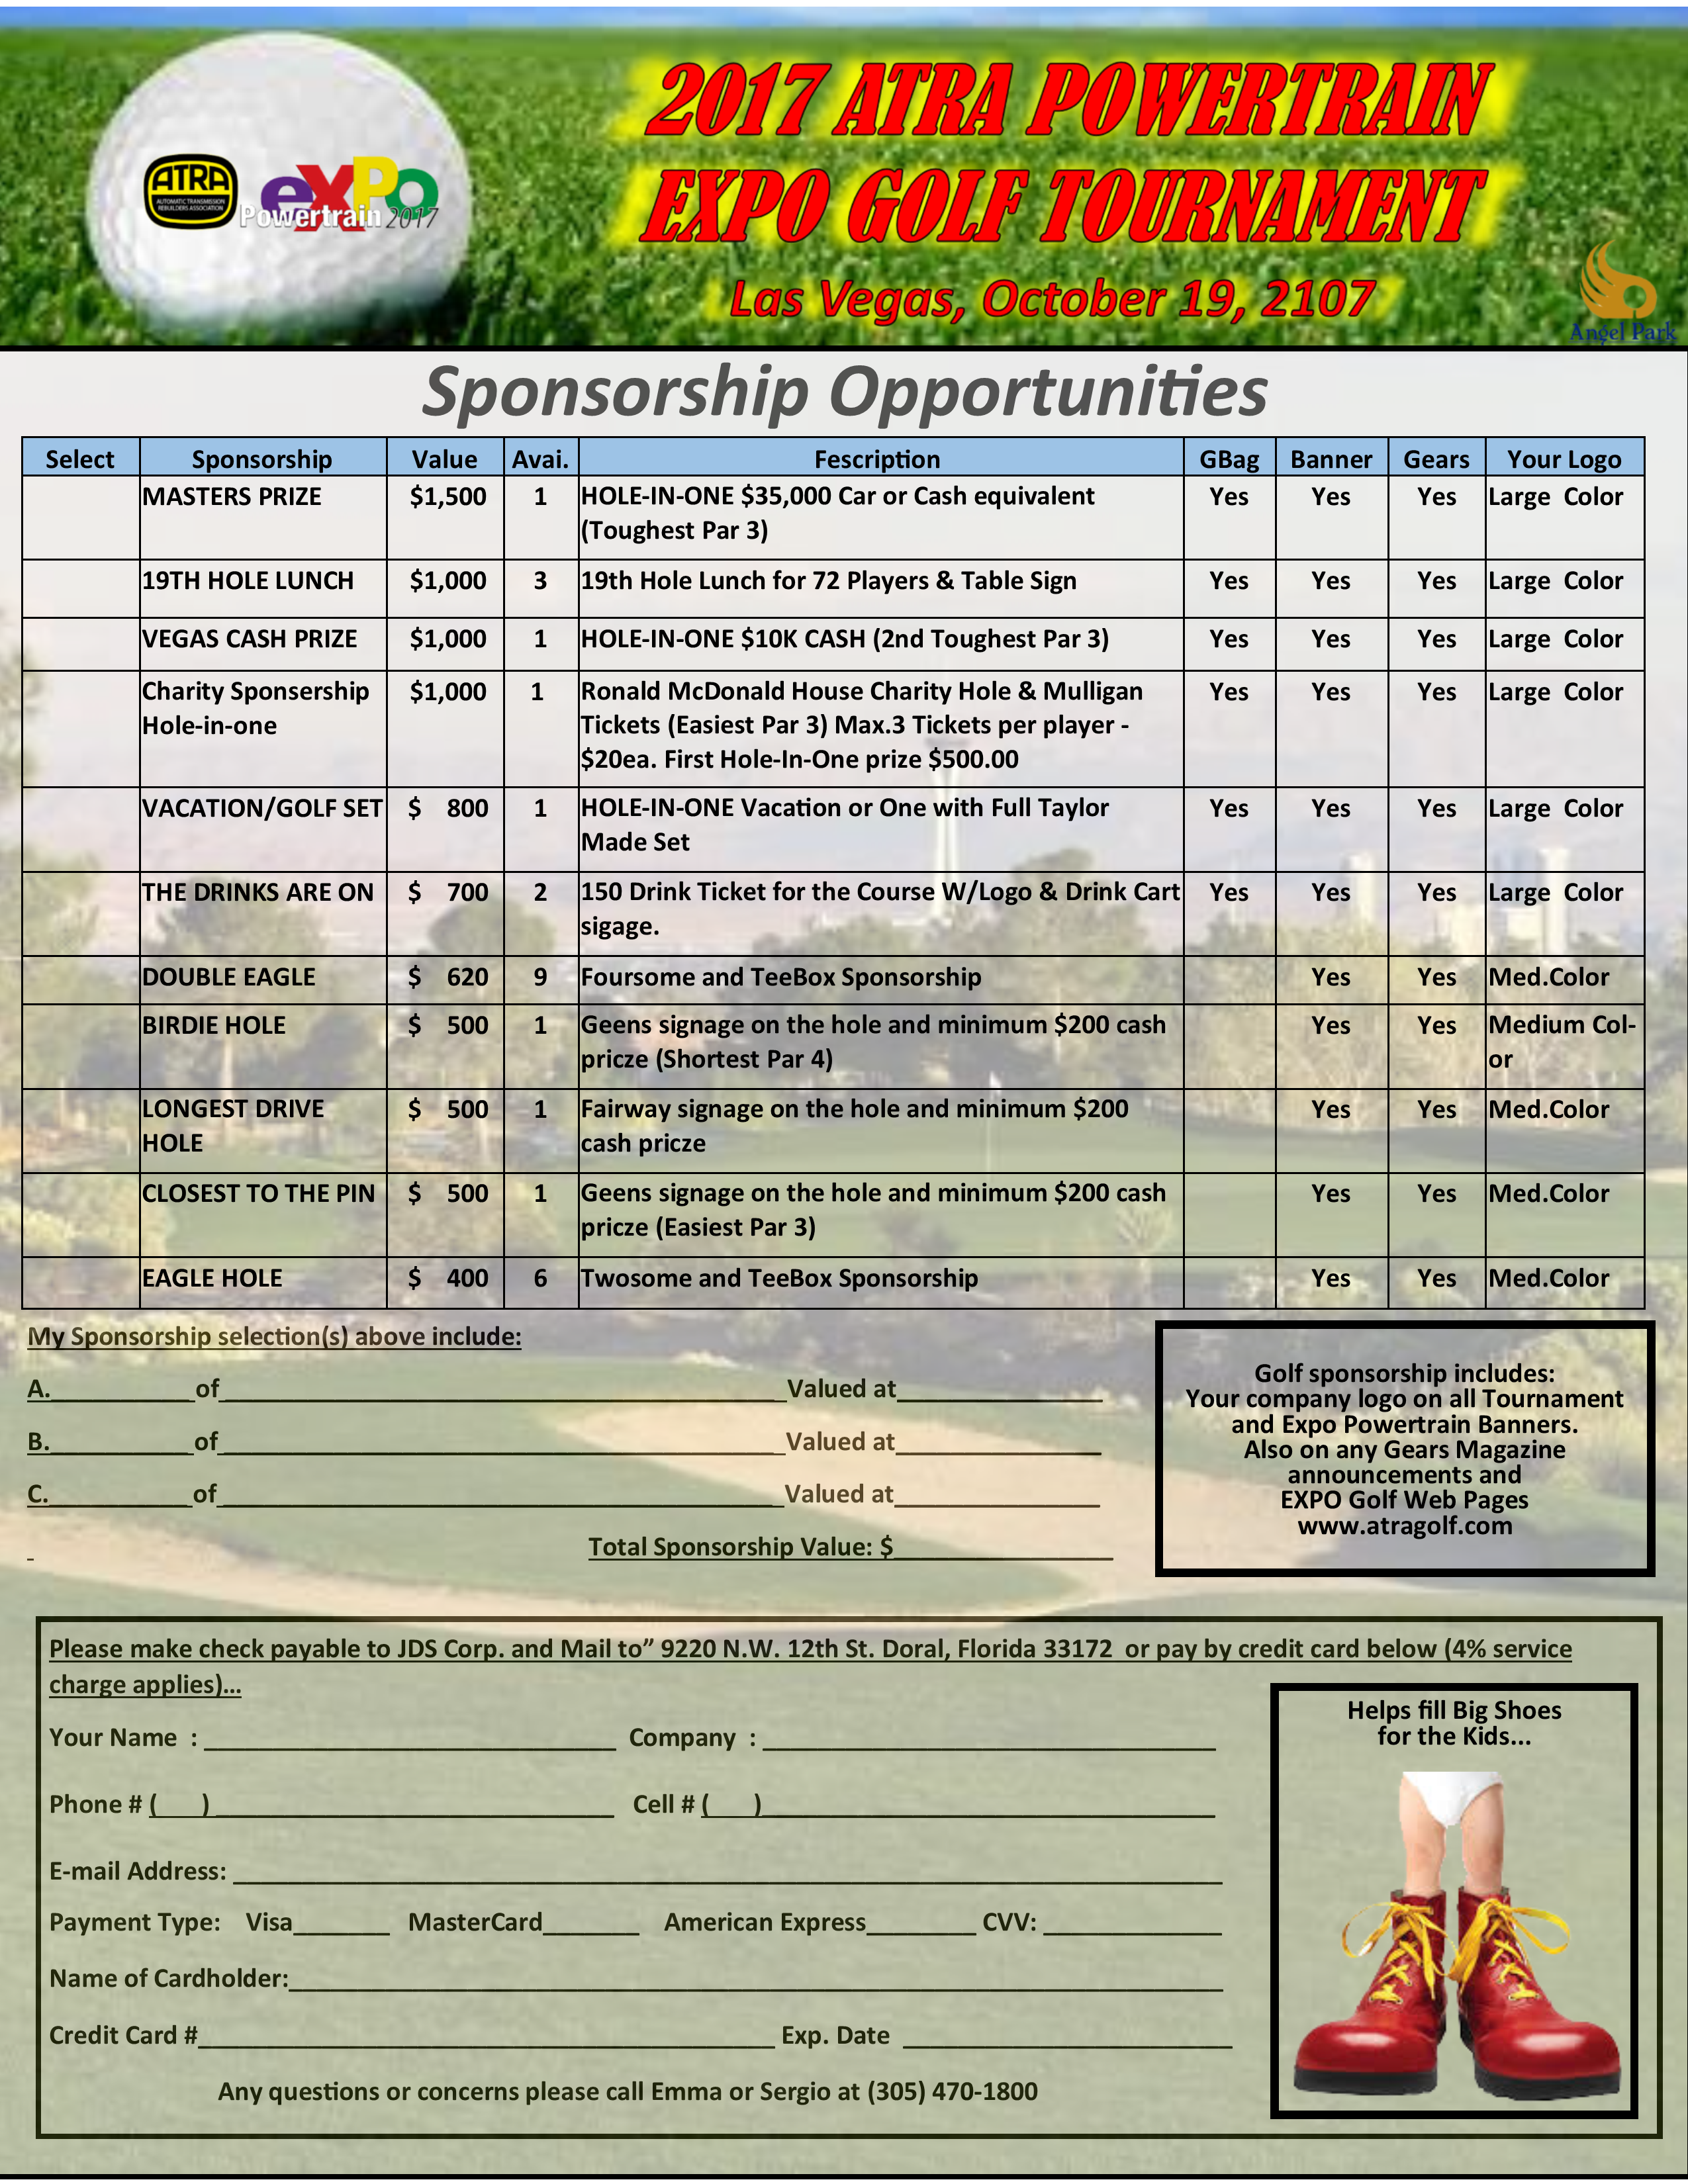 Sponsor form 2017 atra powertrain golf tournament ver3 sponsorship form png thecheapjerseys Image collections